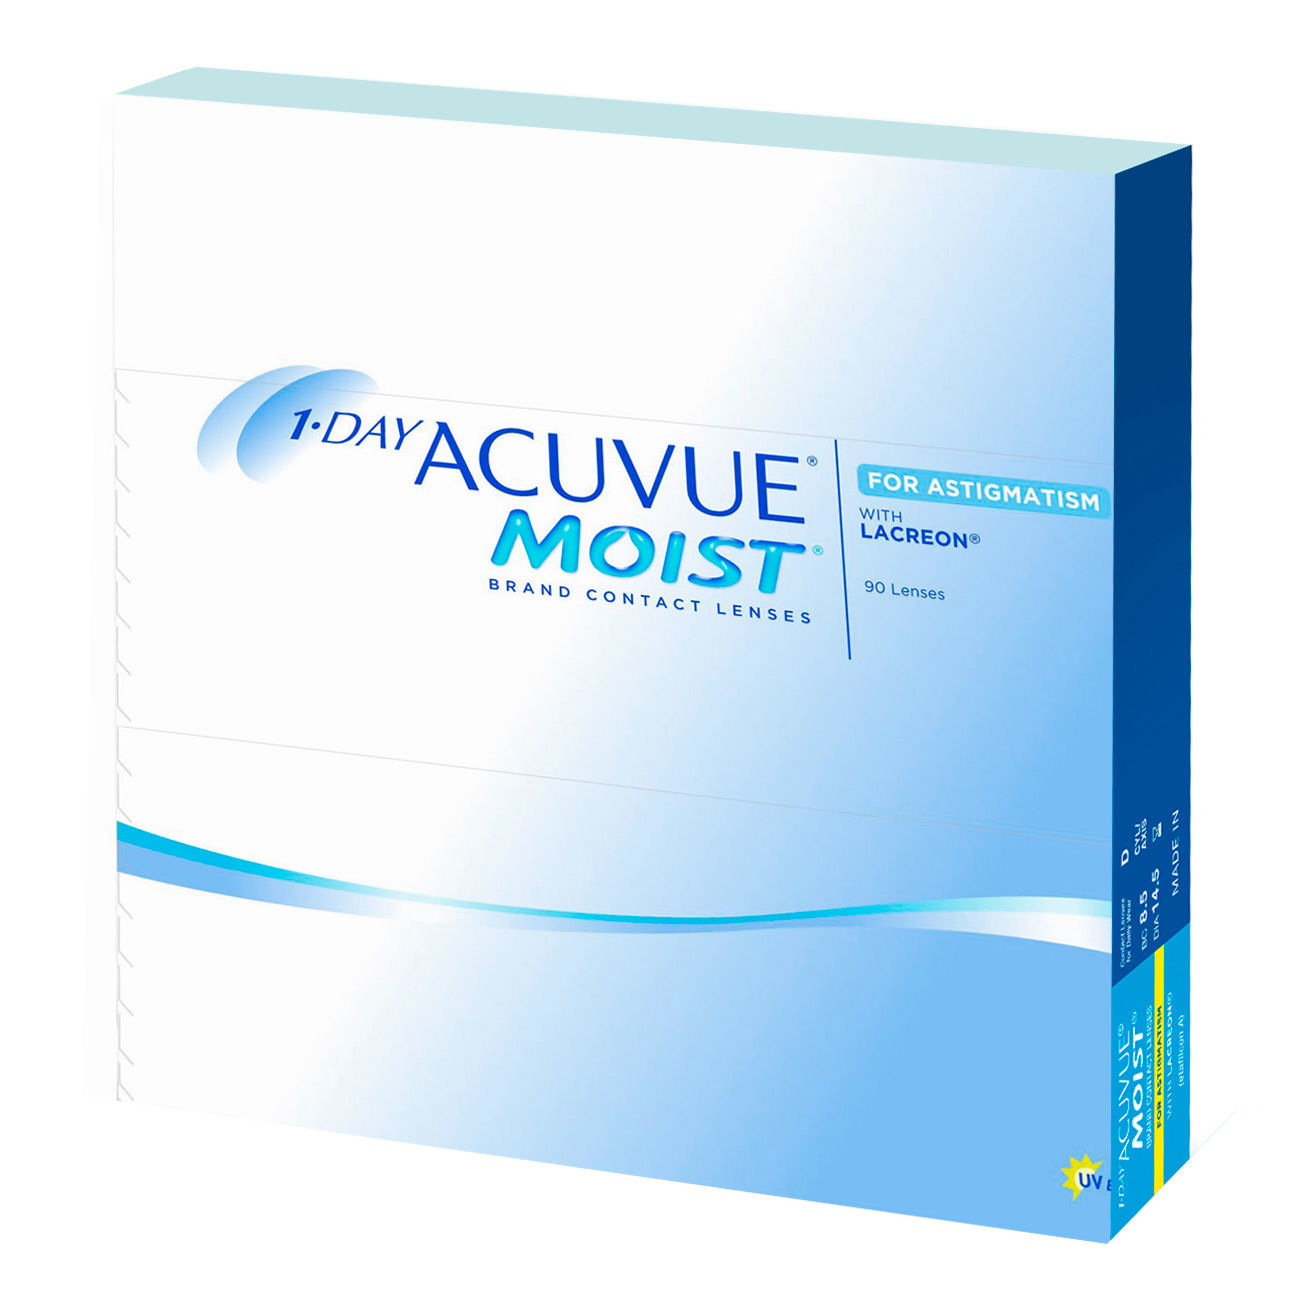 Контактные линзы 1 DAY ACUVUE MOIST for ASTIGMATISM (90 линз)  фото